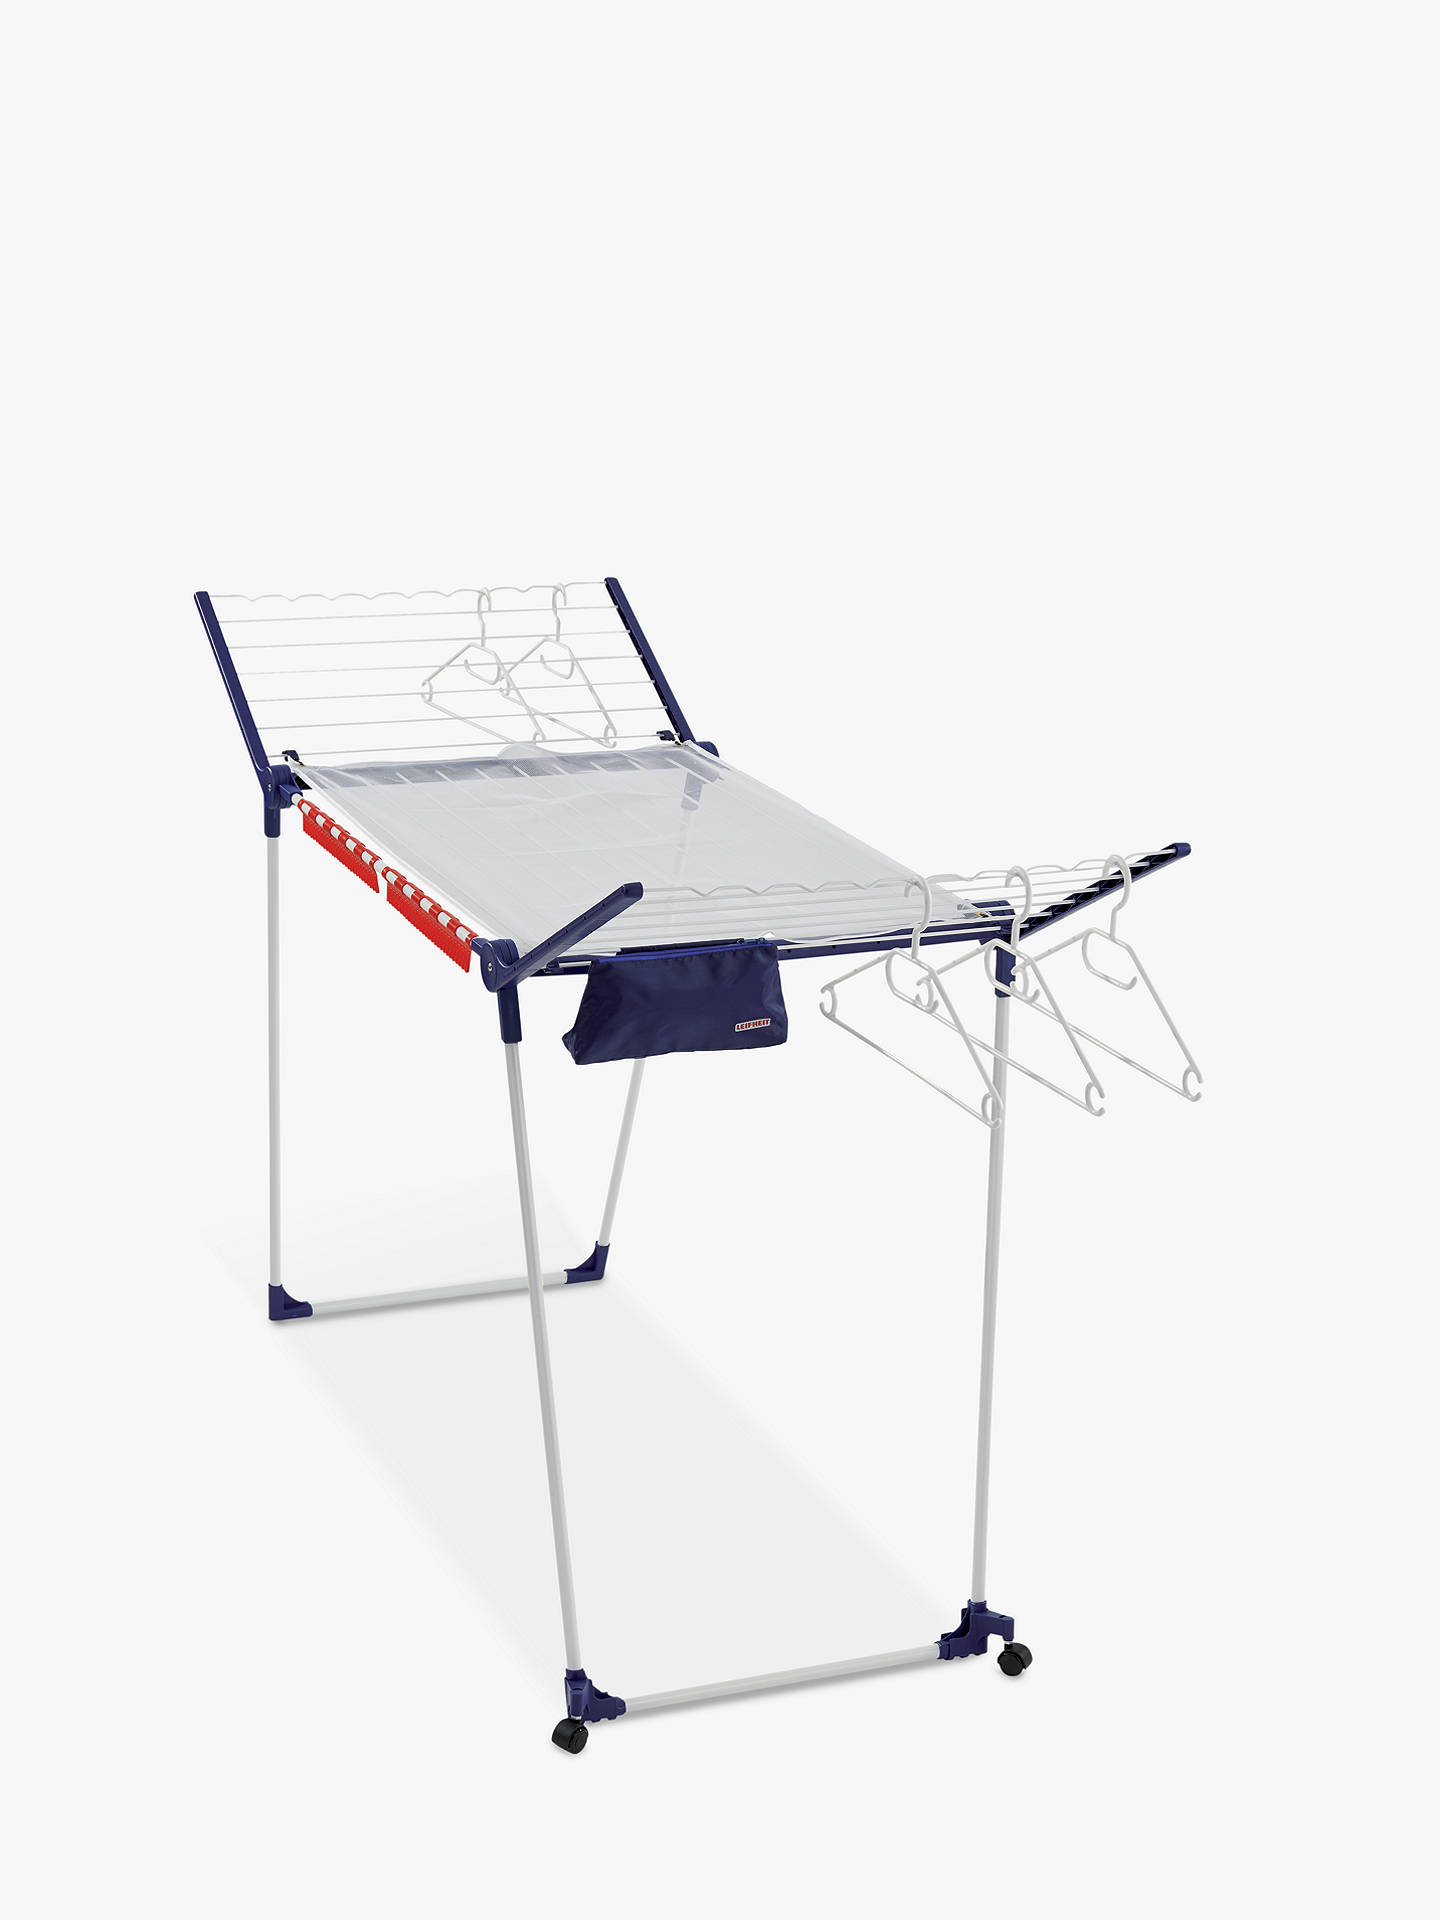 BuyLeifheit Pegasus 200 Deluxe Mobile Indoor Clothes Airer Online at johnlewis.com